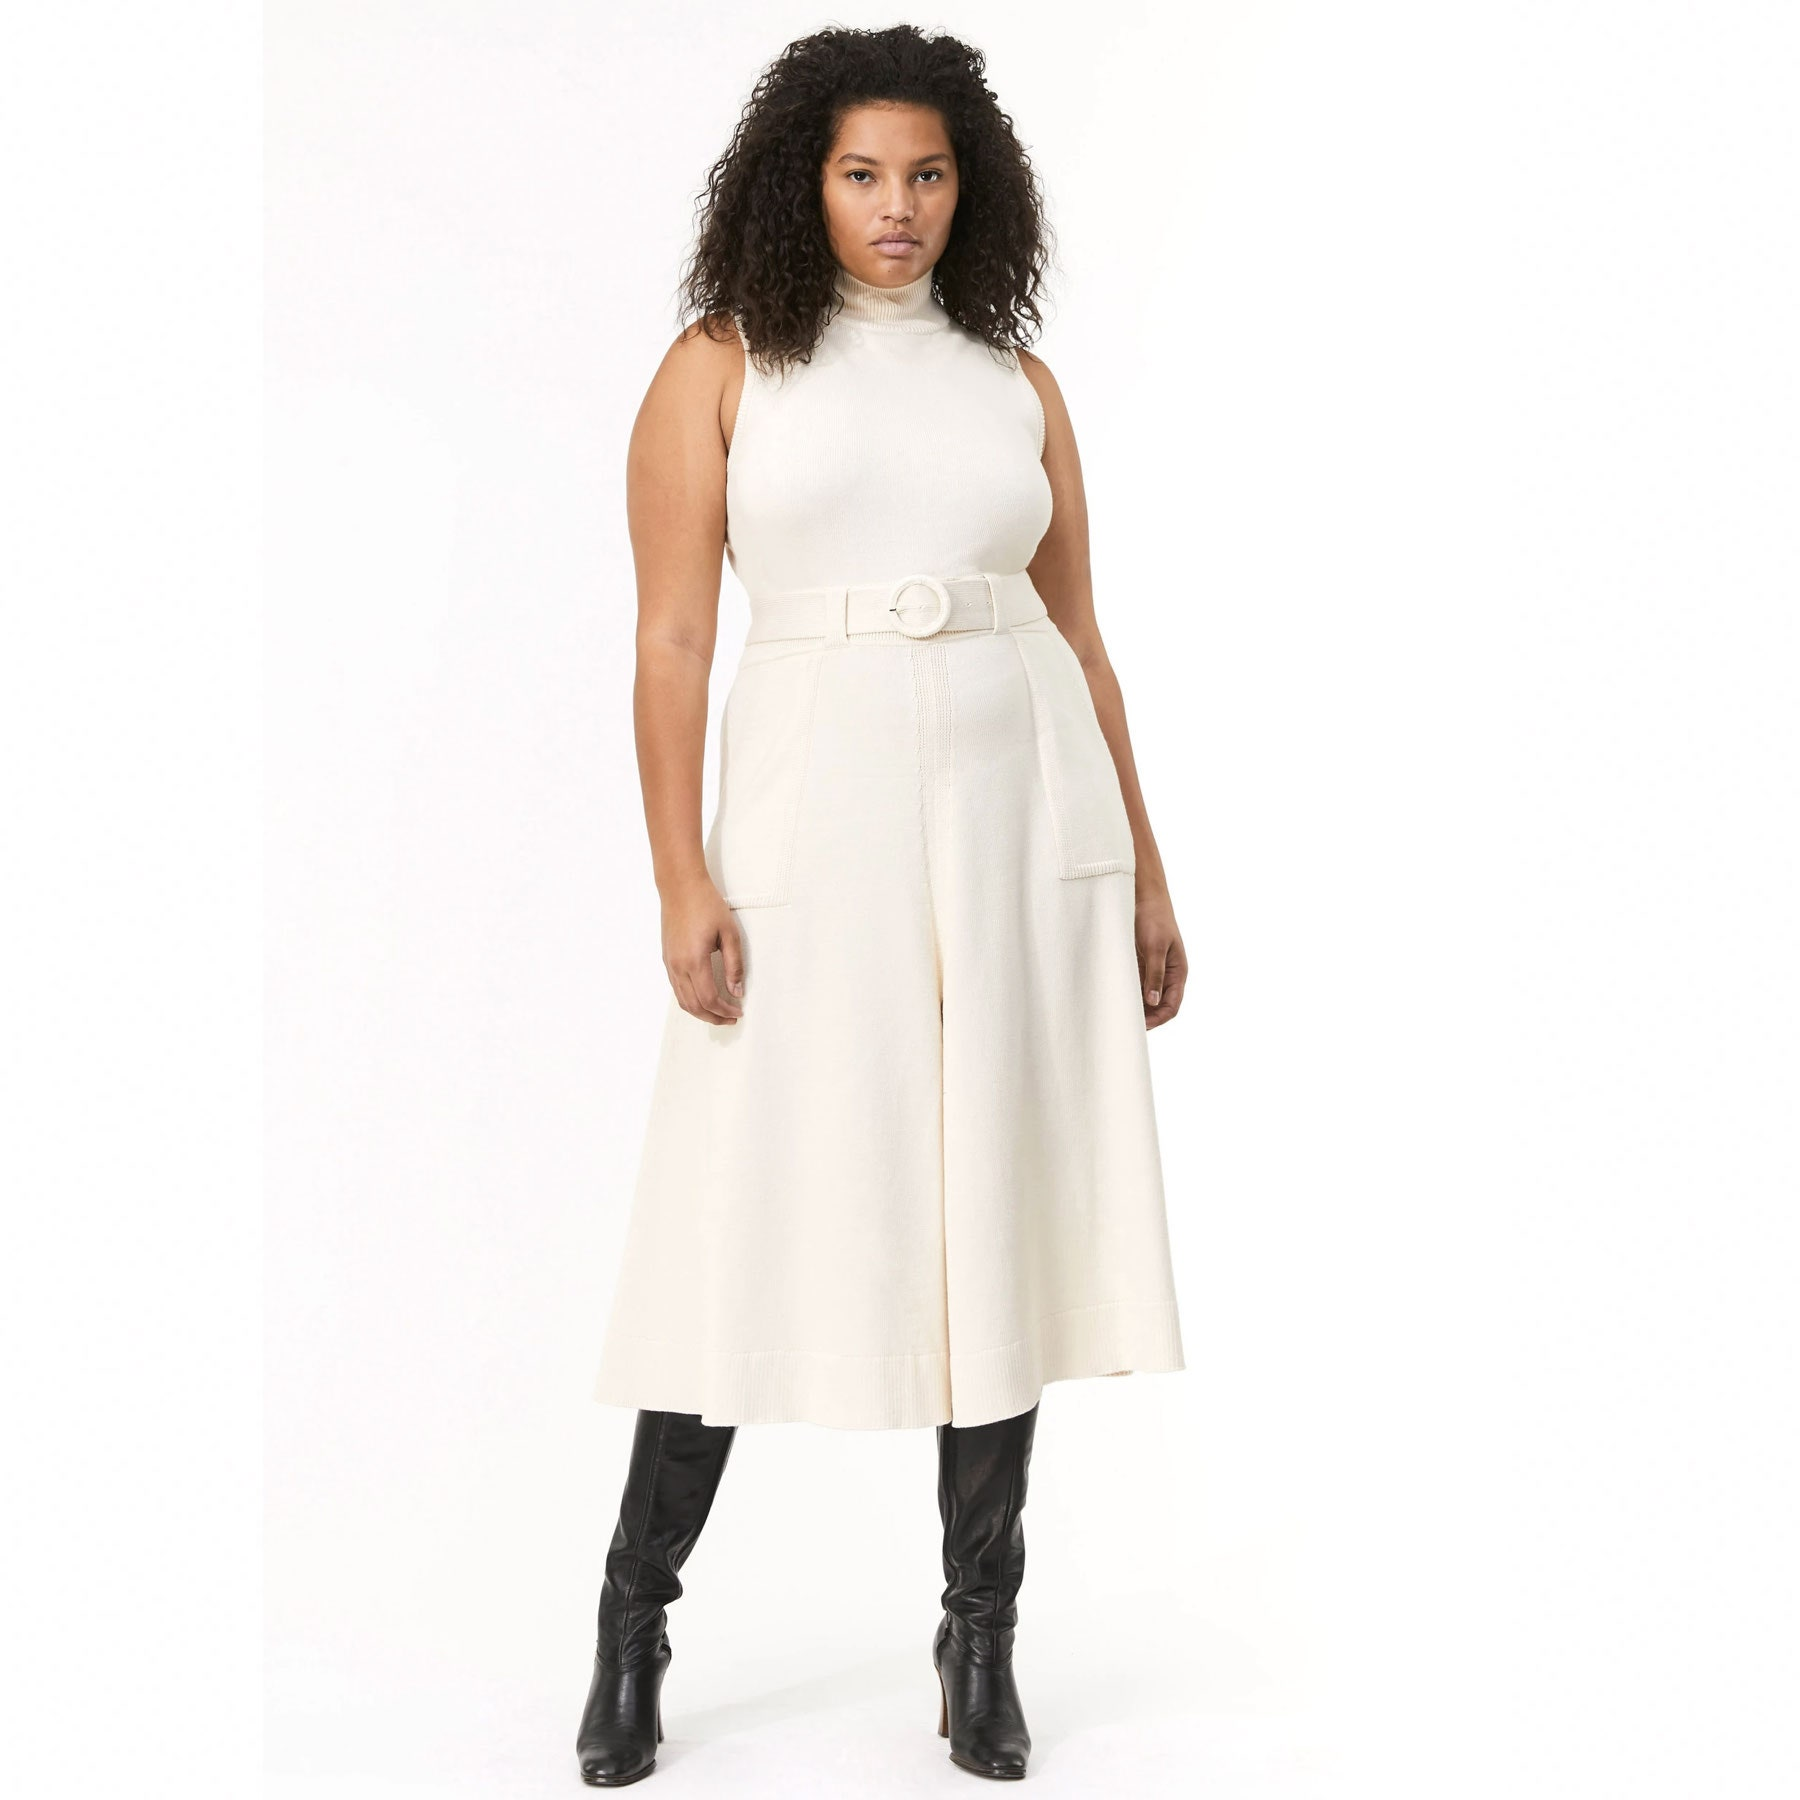 model wearing white turtleneck dress with high black boots